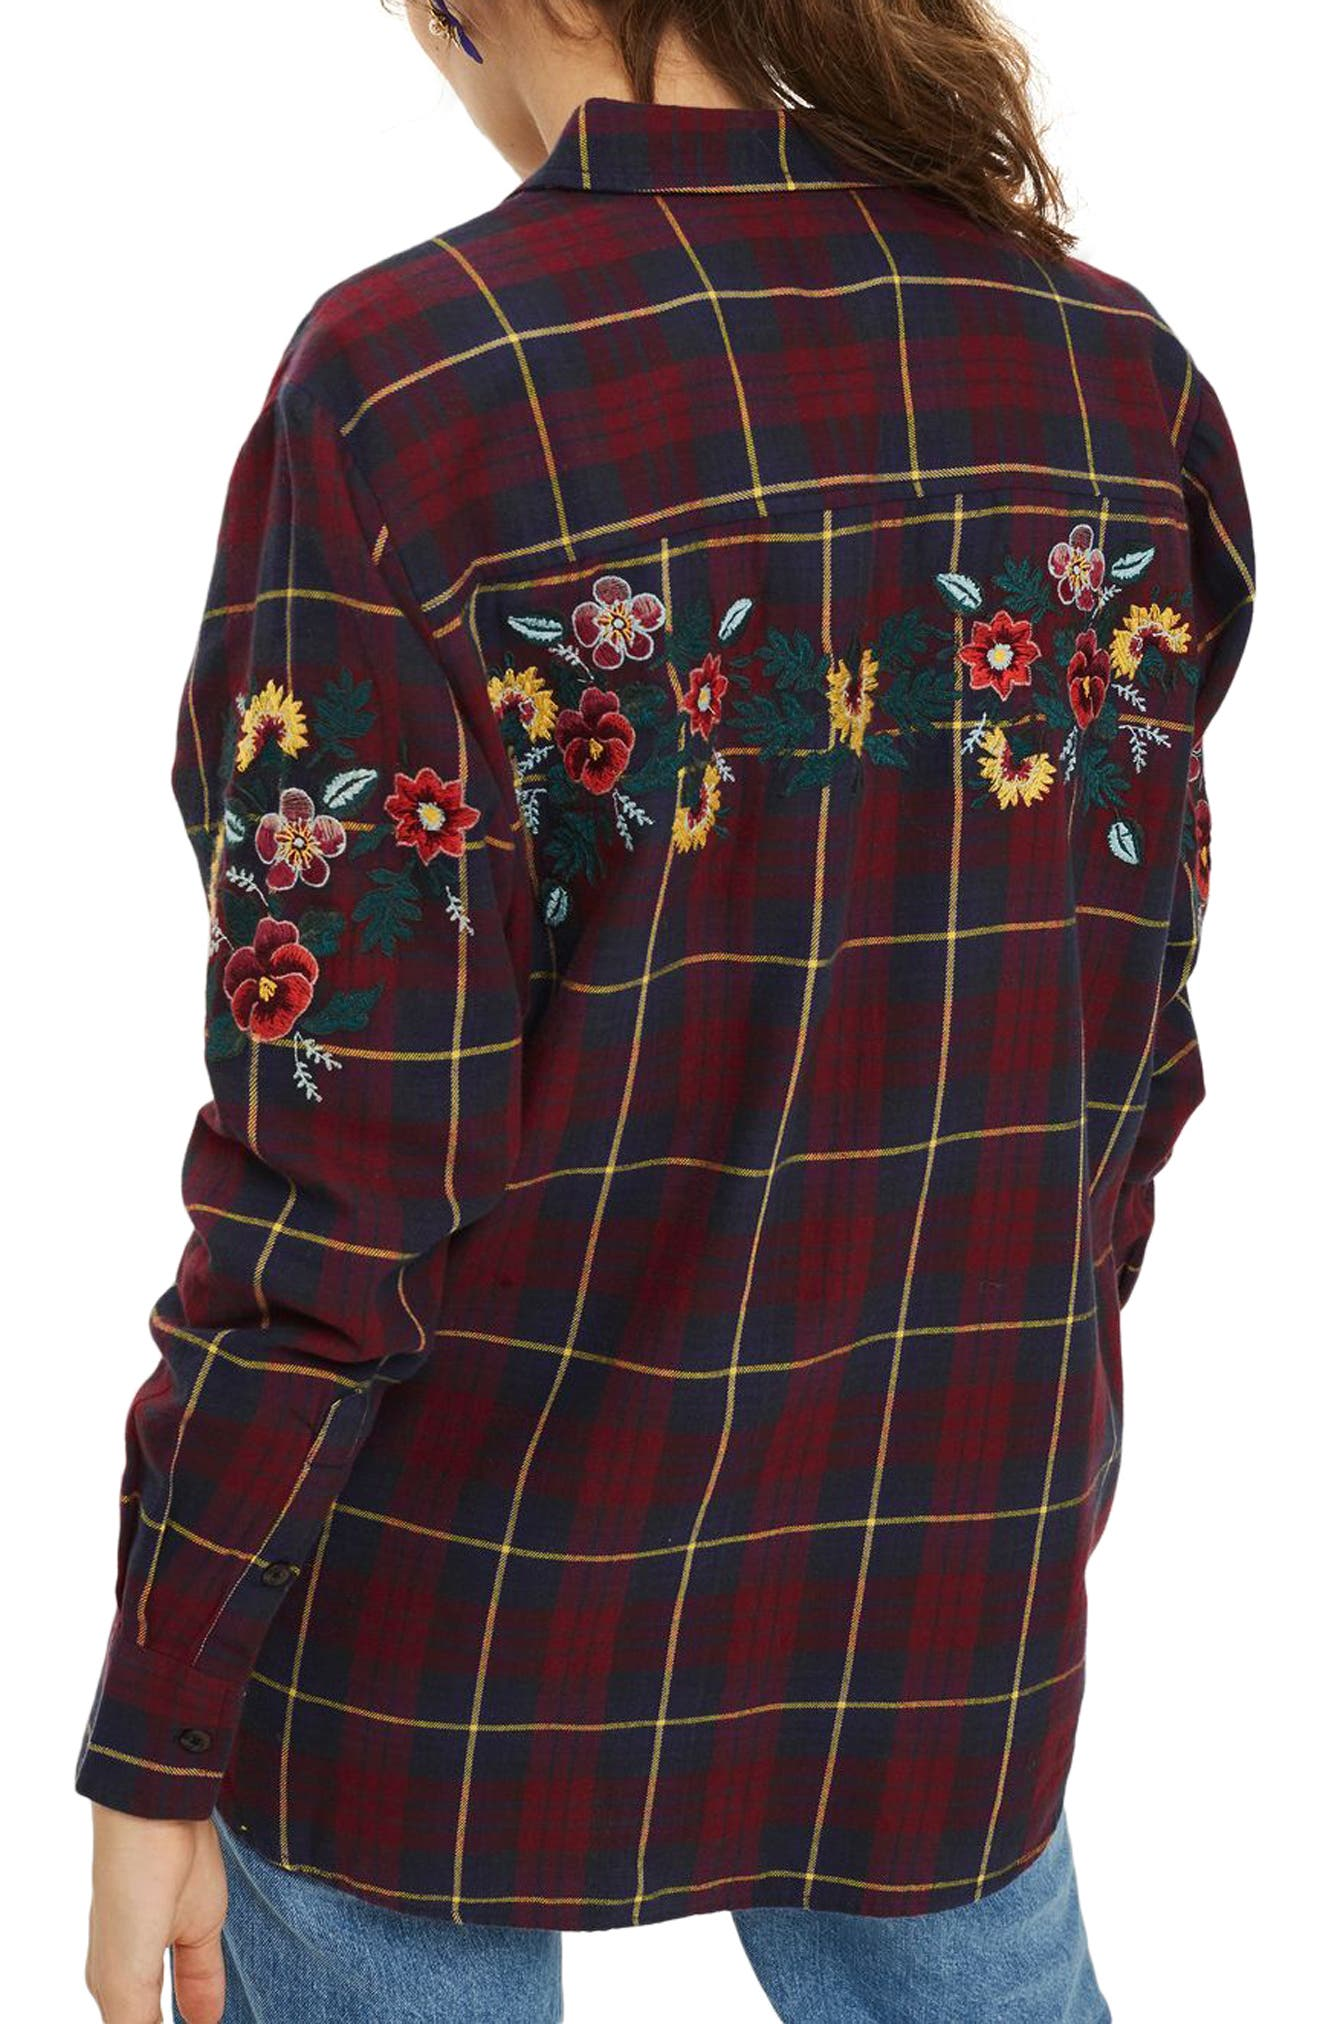 Floral Embroidered Check Shirt,                             Alternate thumbnail 2, color,                             Navy Blue Multi 2